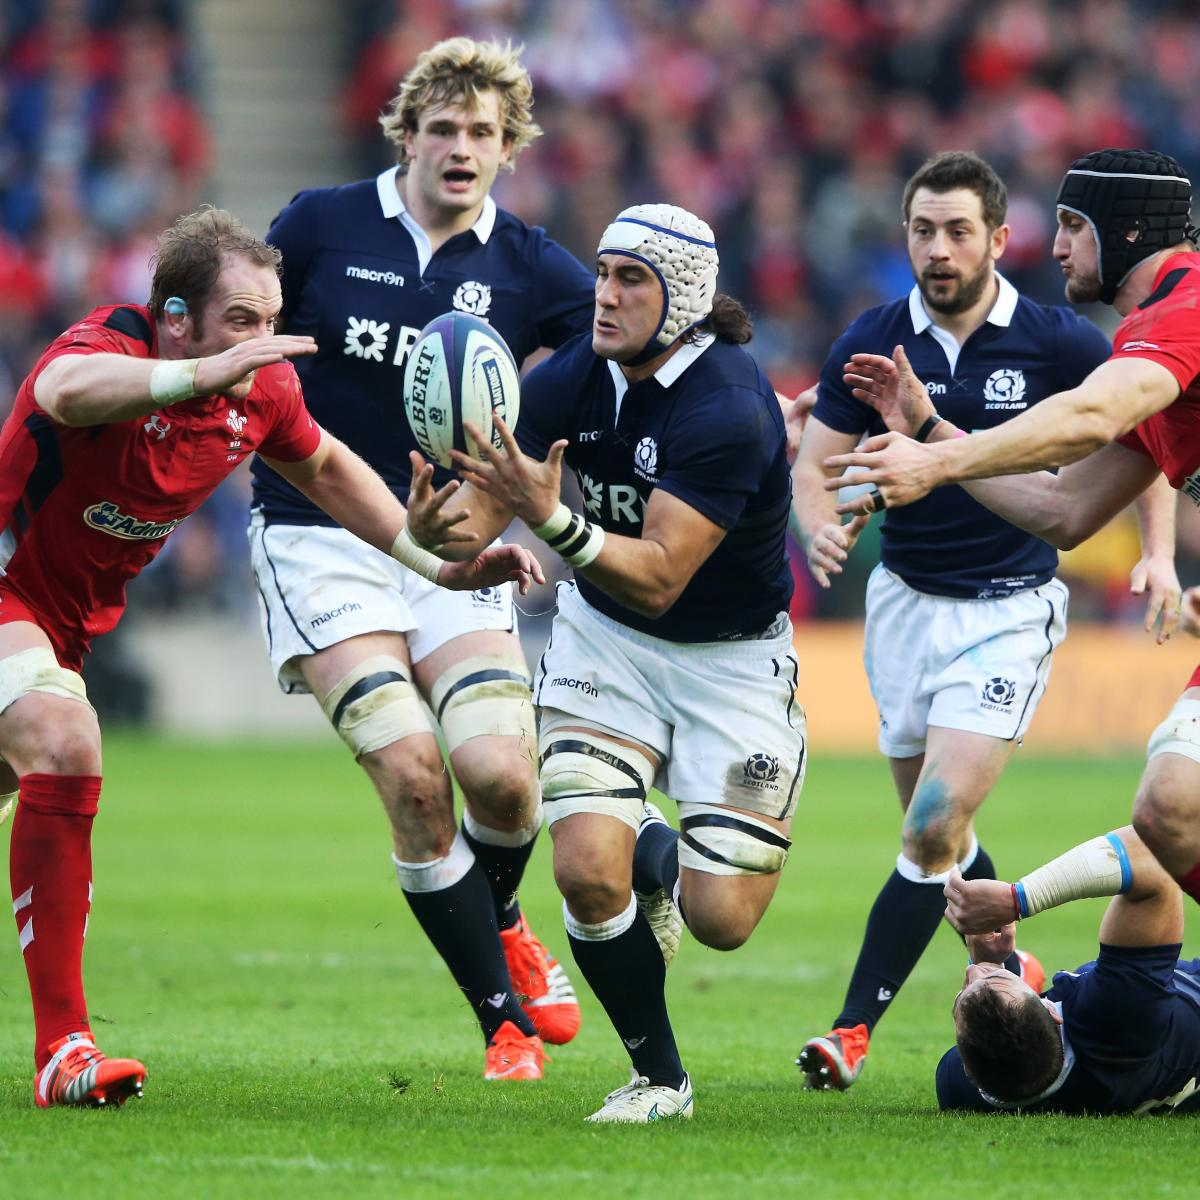 Scotland V Australia World Rugby: Scotland Vs. Wales: Score And Twitter Reaction From 2015